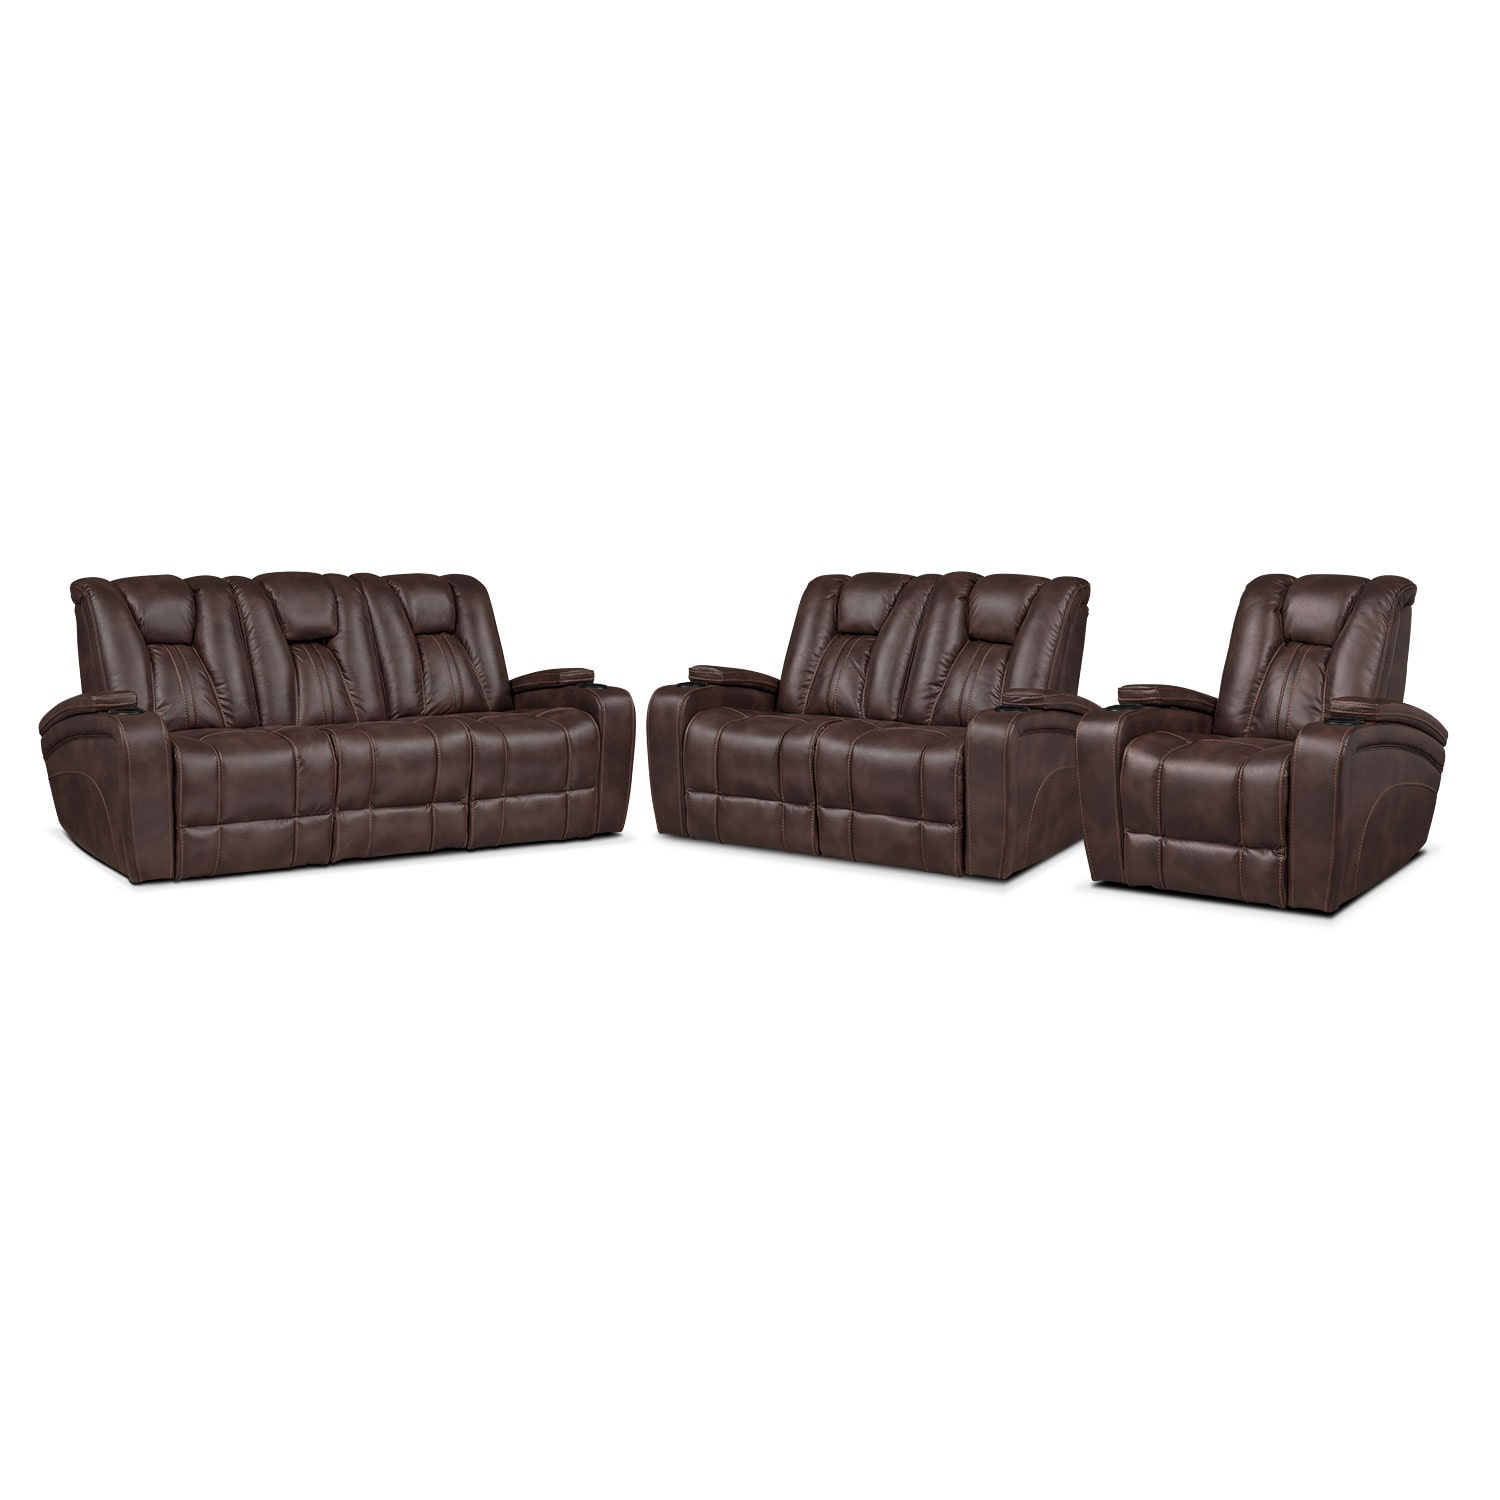 Pulsar Power Reclining Sofa, Power Reclining Loveseat and Power Recliner Set - Brown